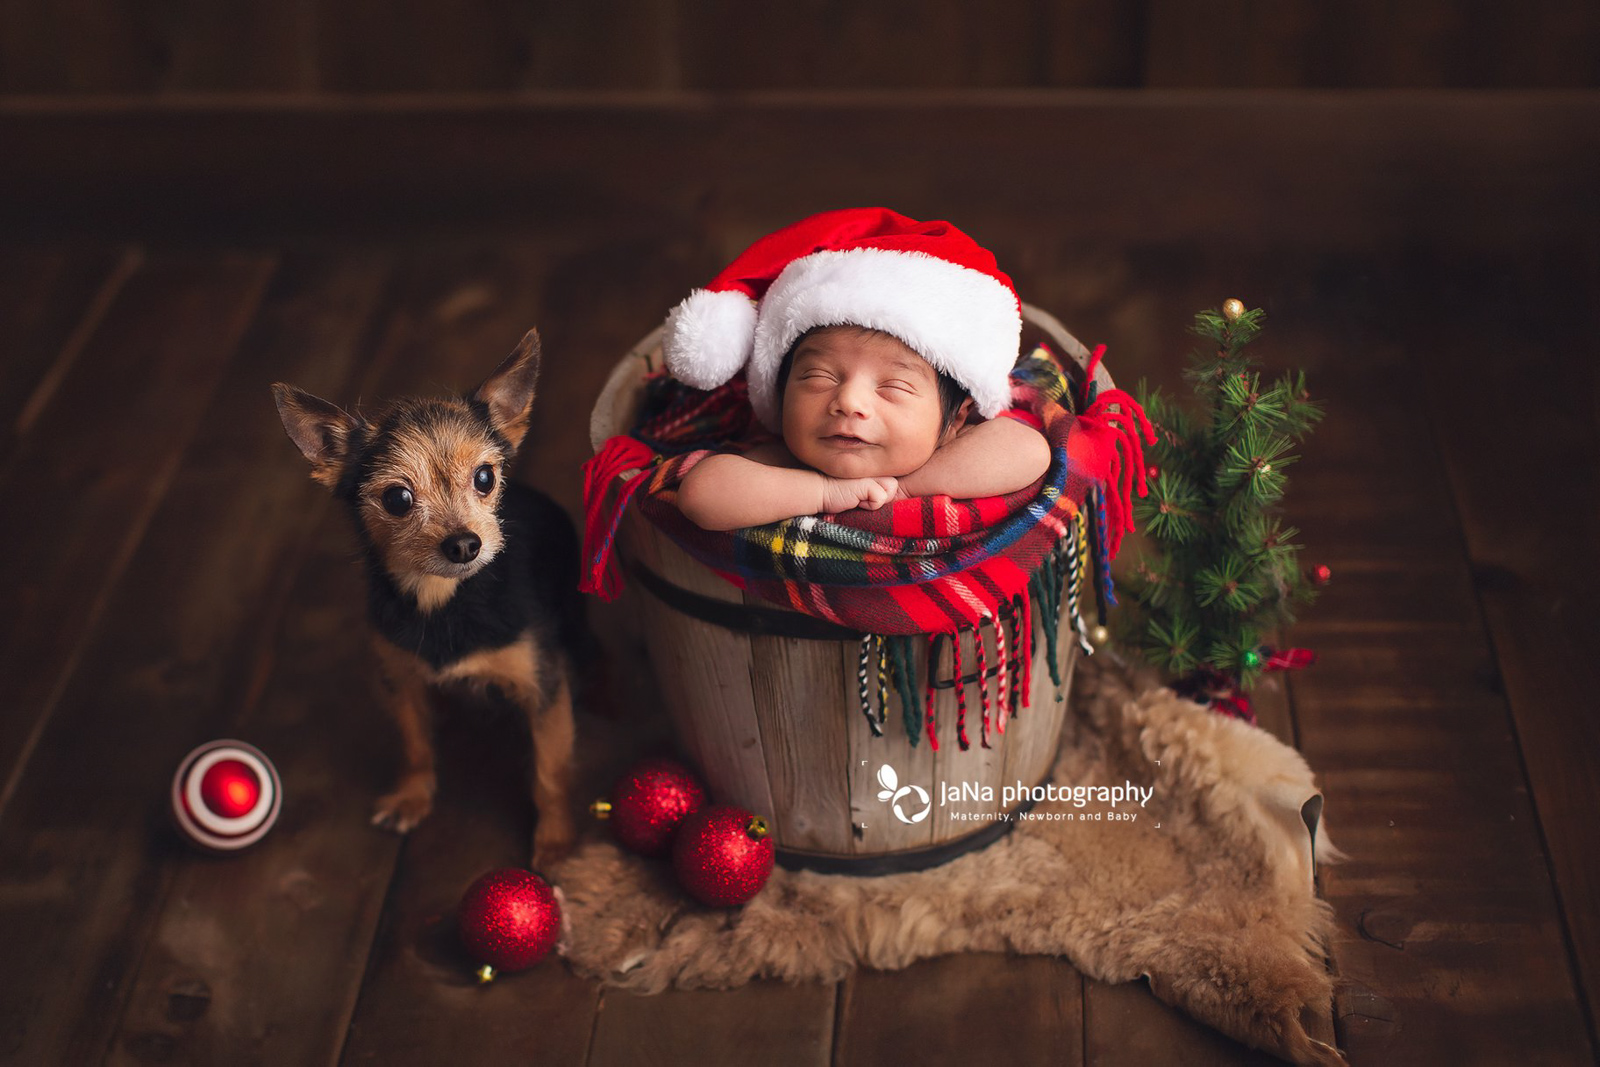 christmas setup with a small black dog and newborn baby boy